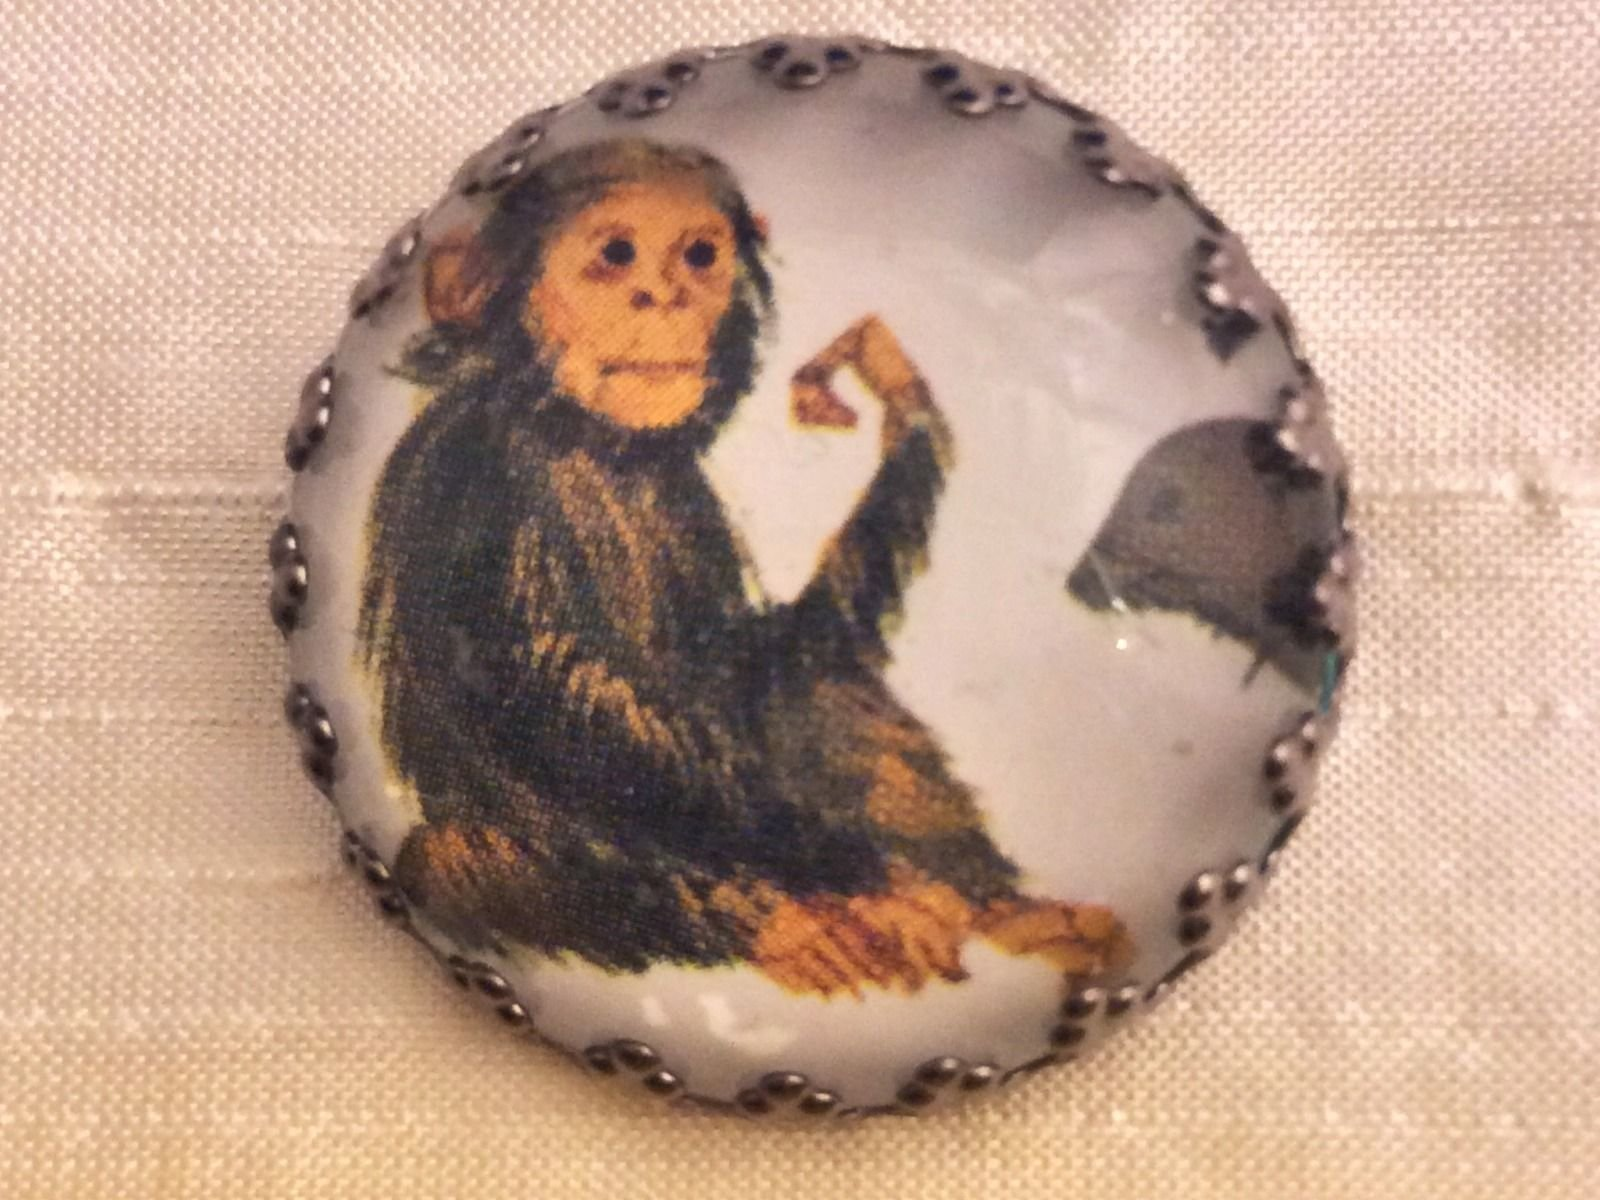 Charley Harper Monkey Chimp 1 Glass Sewing Button Mid Century Mod Charles CH216